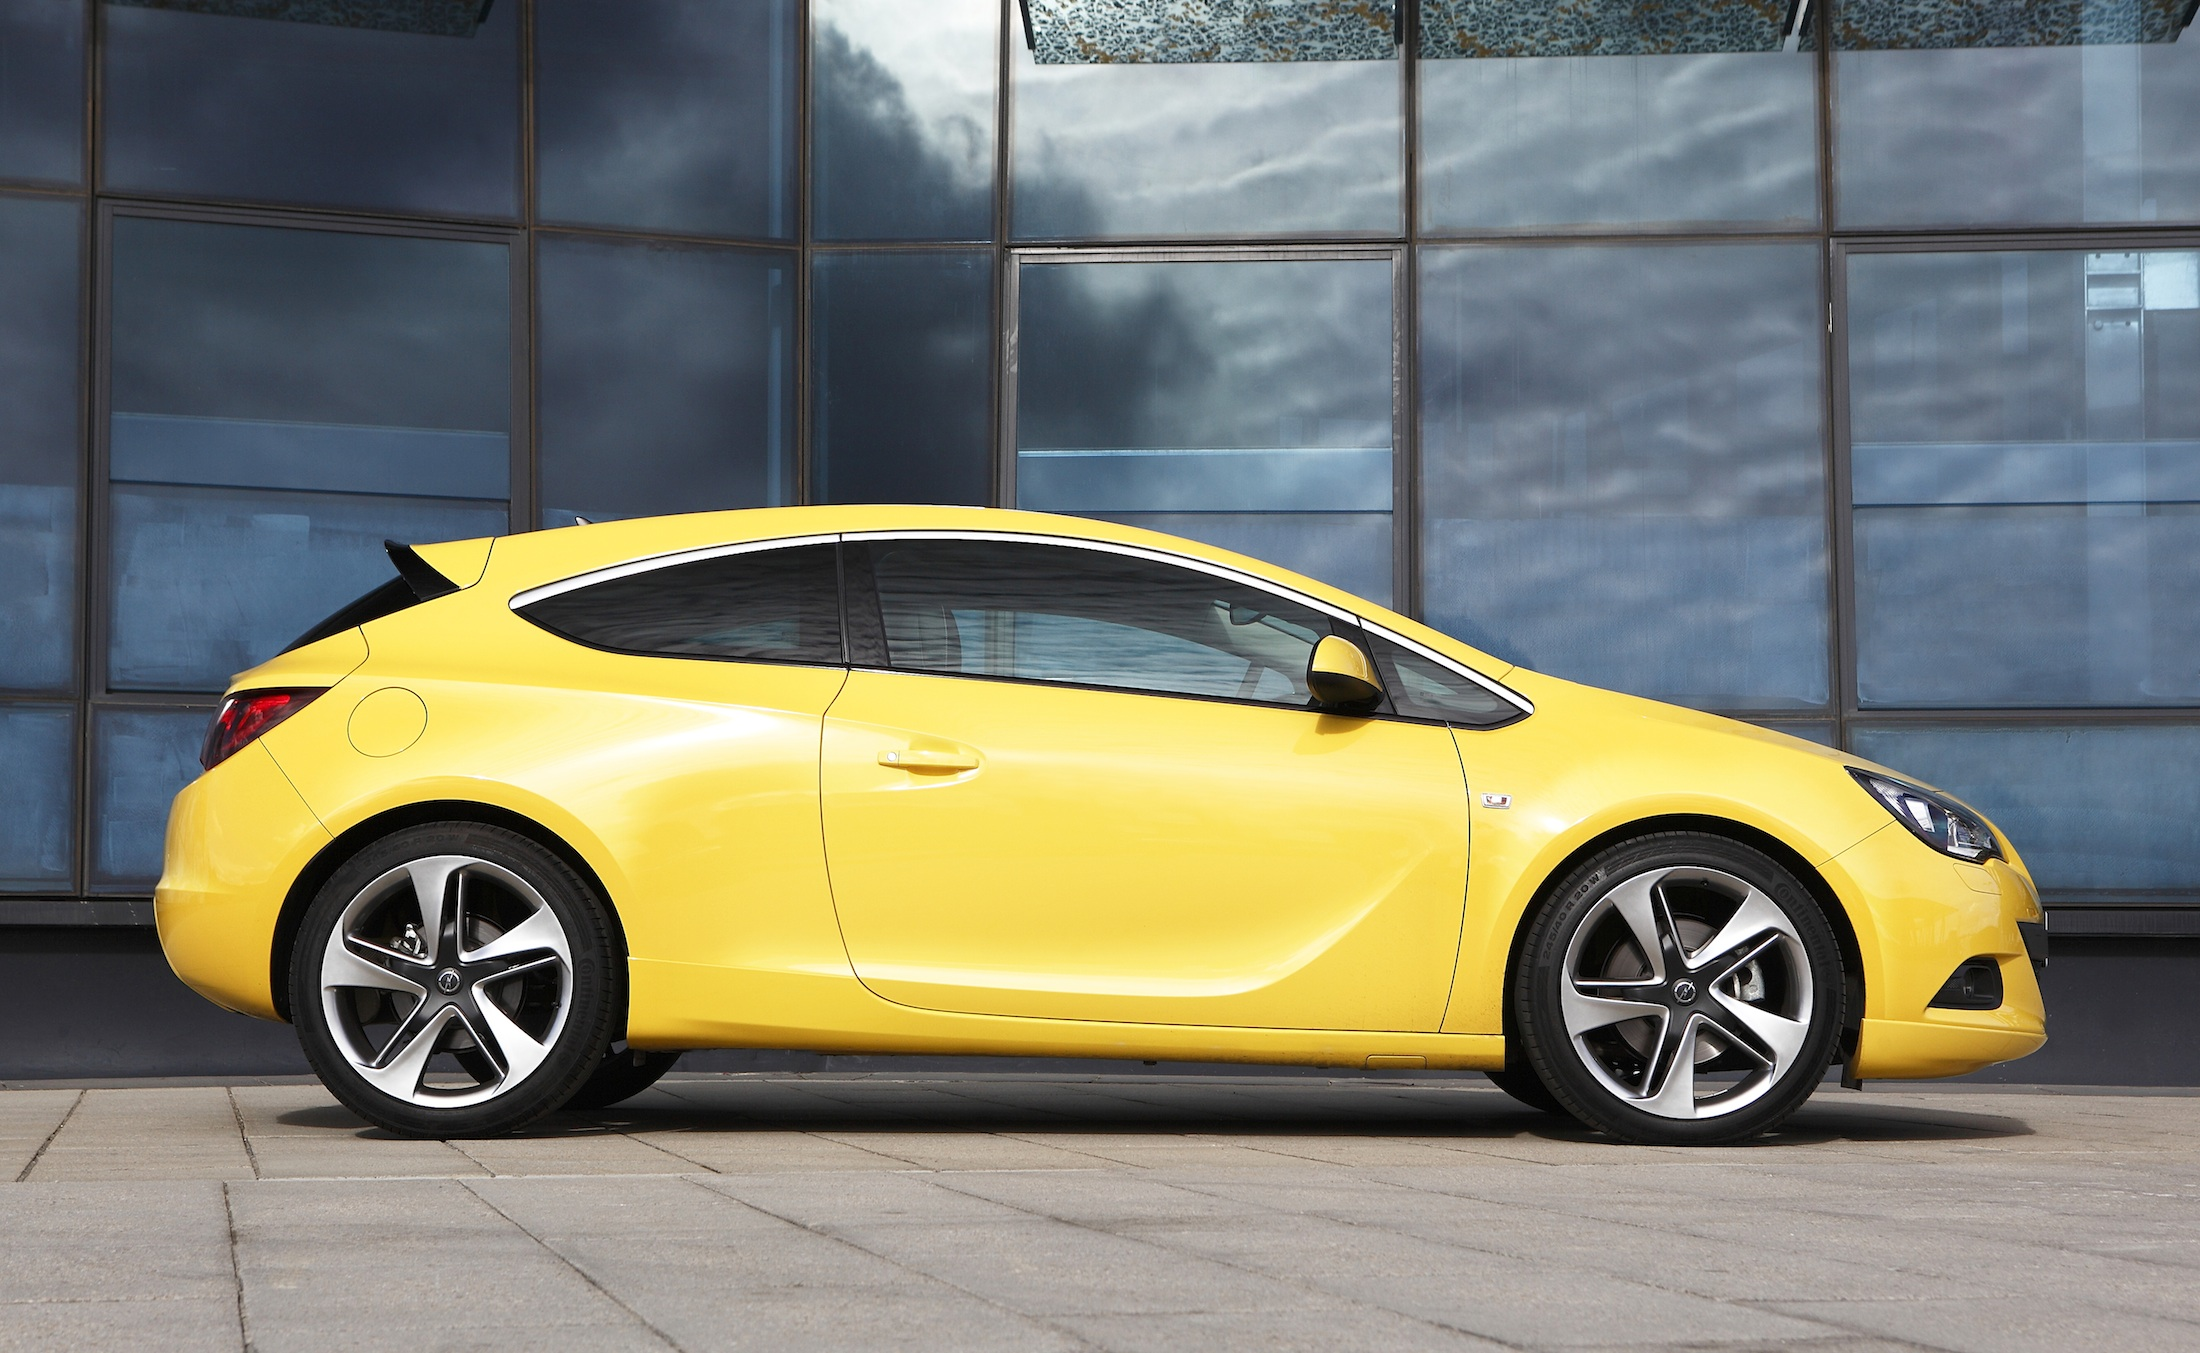 opel astra gtc pricing and specifications revealed photos 1 of 6. Black Bedroom Furniture Sets. Home Design Ideas